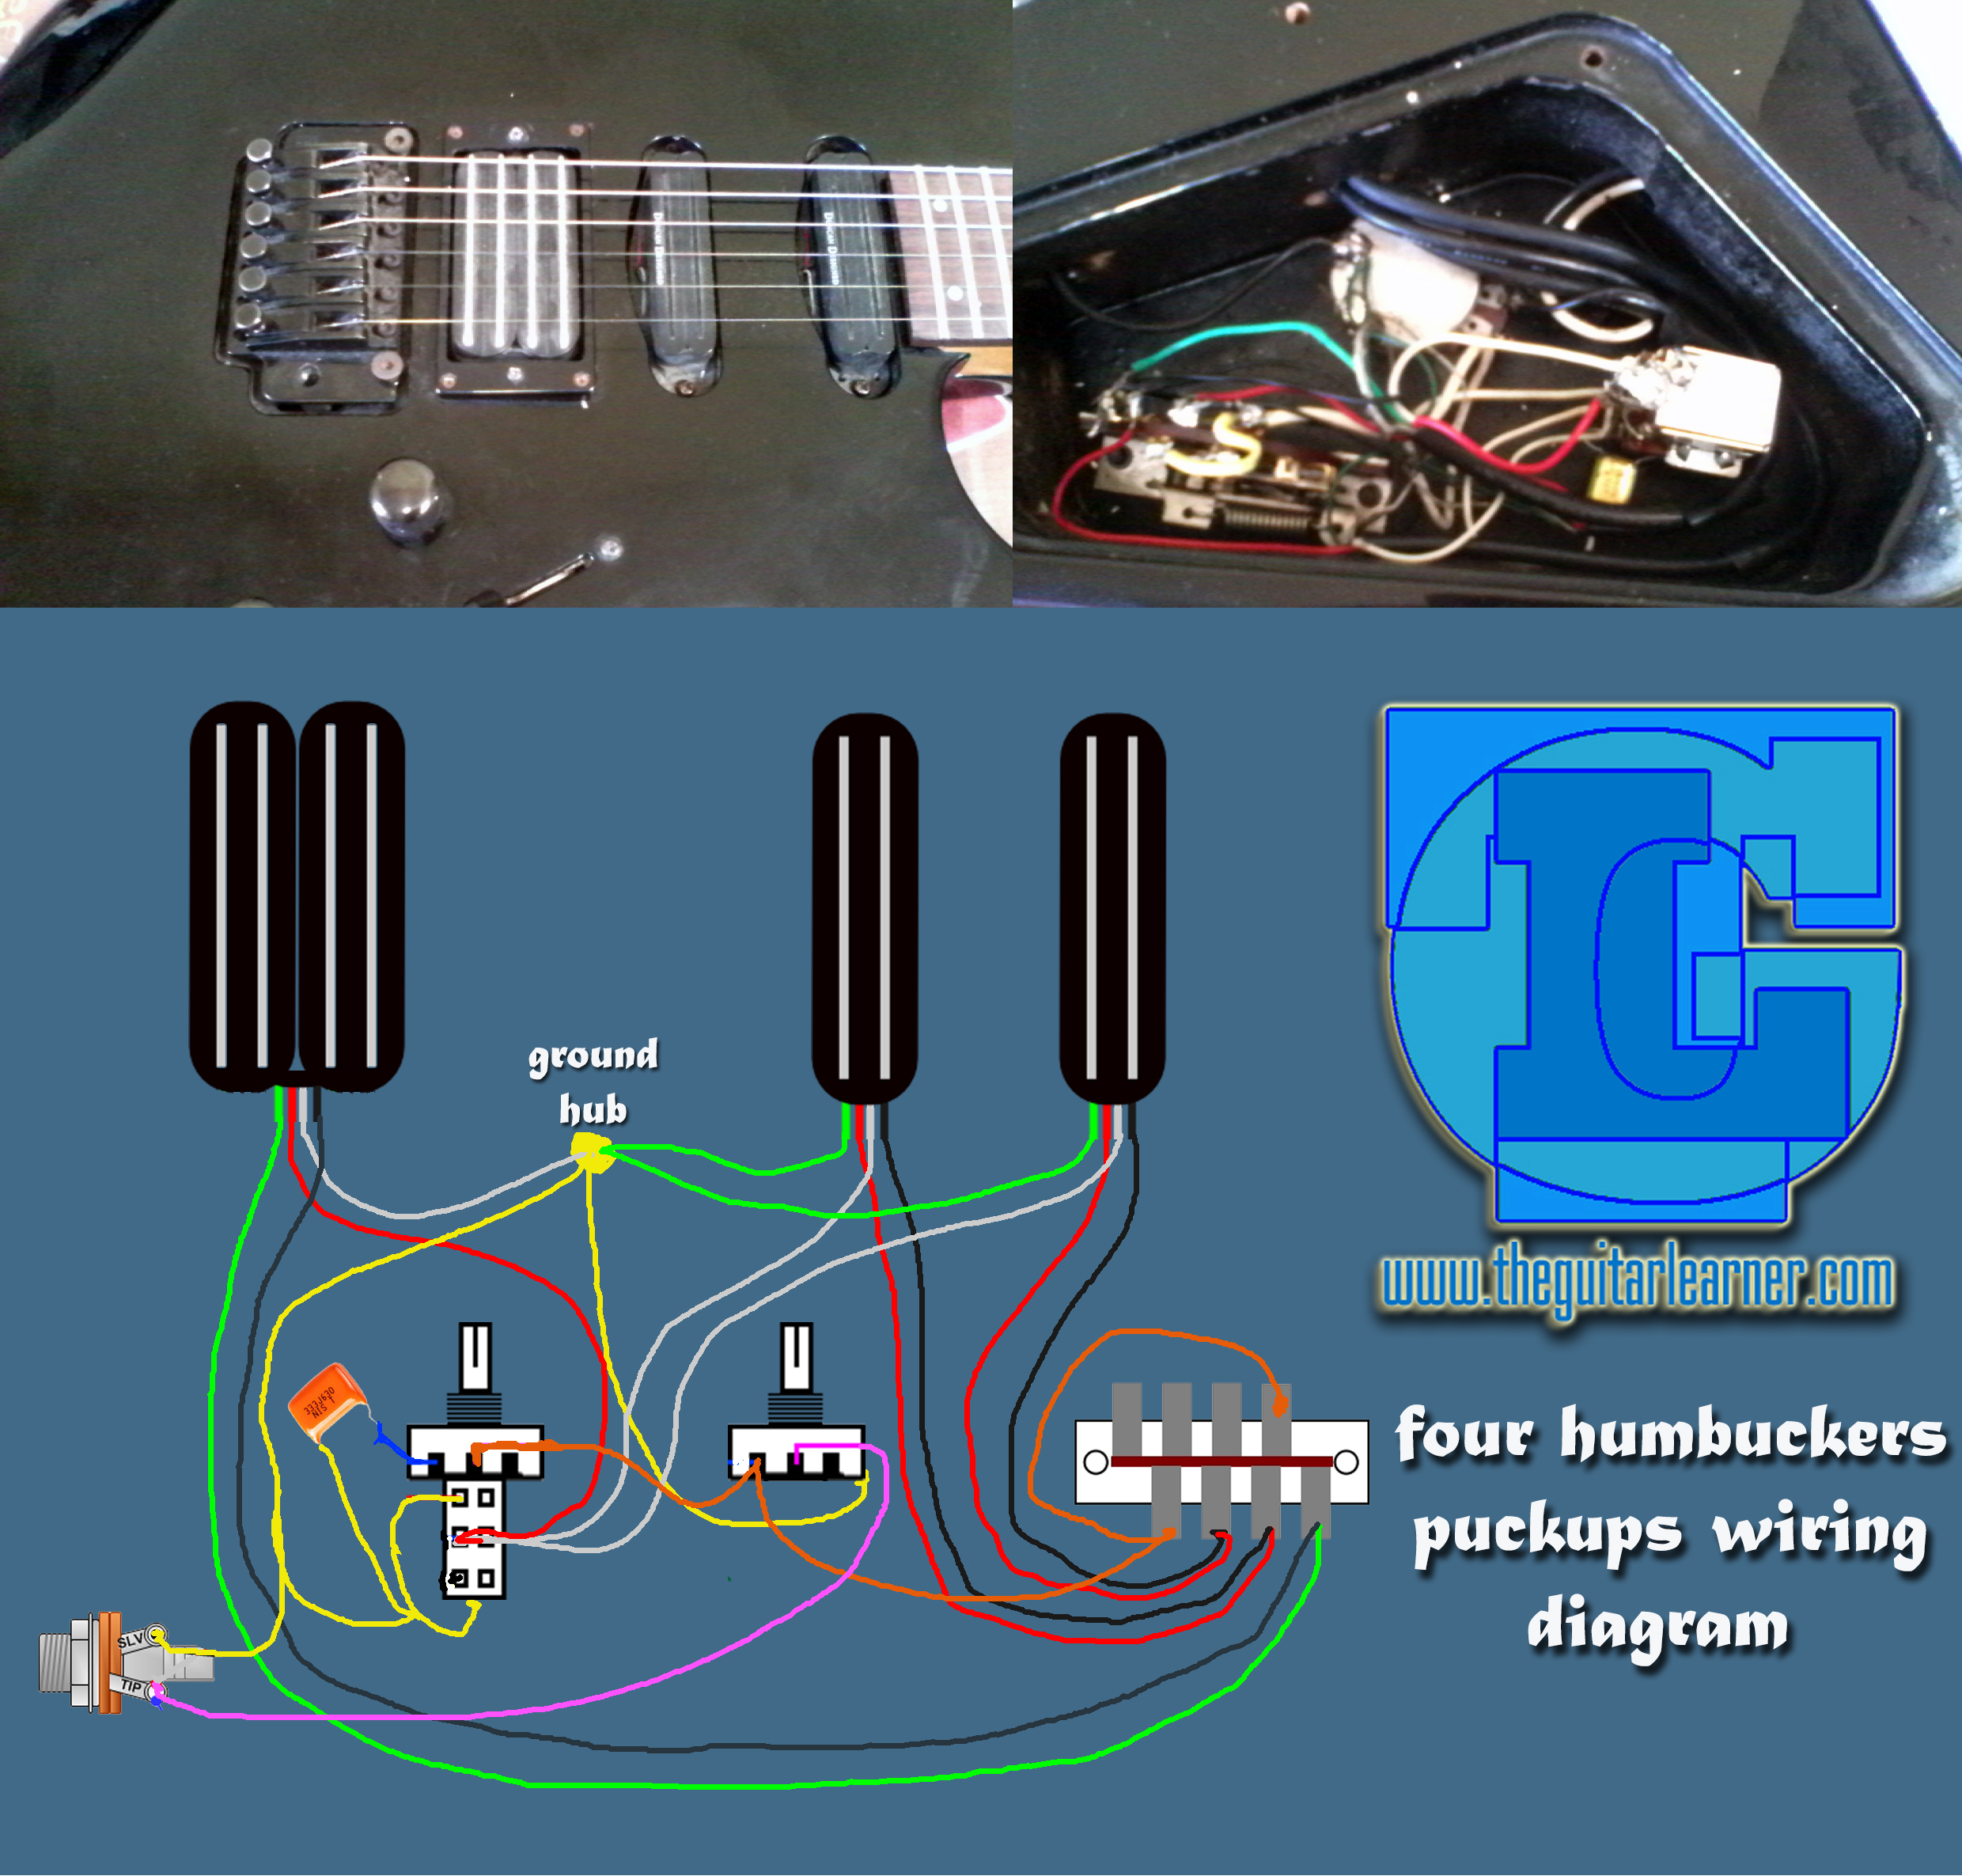 four humbuckers pickup wiring diagram - hotrails and quadrailThe Guitar Learner